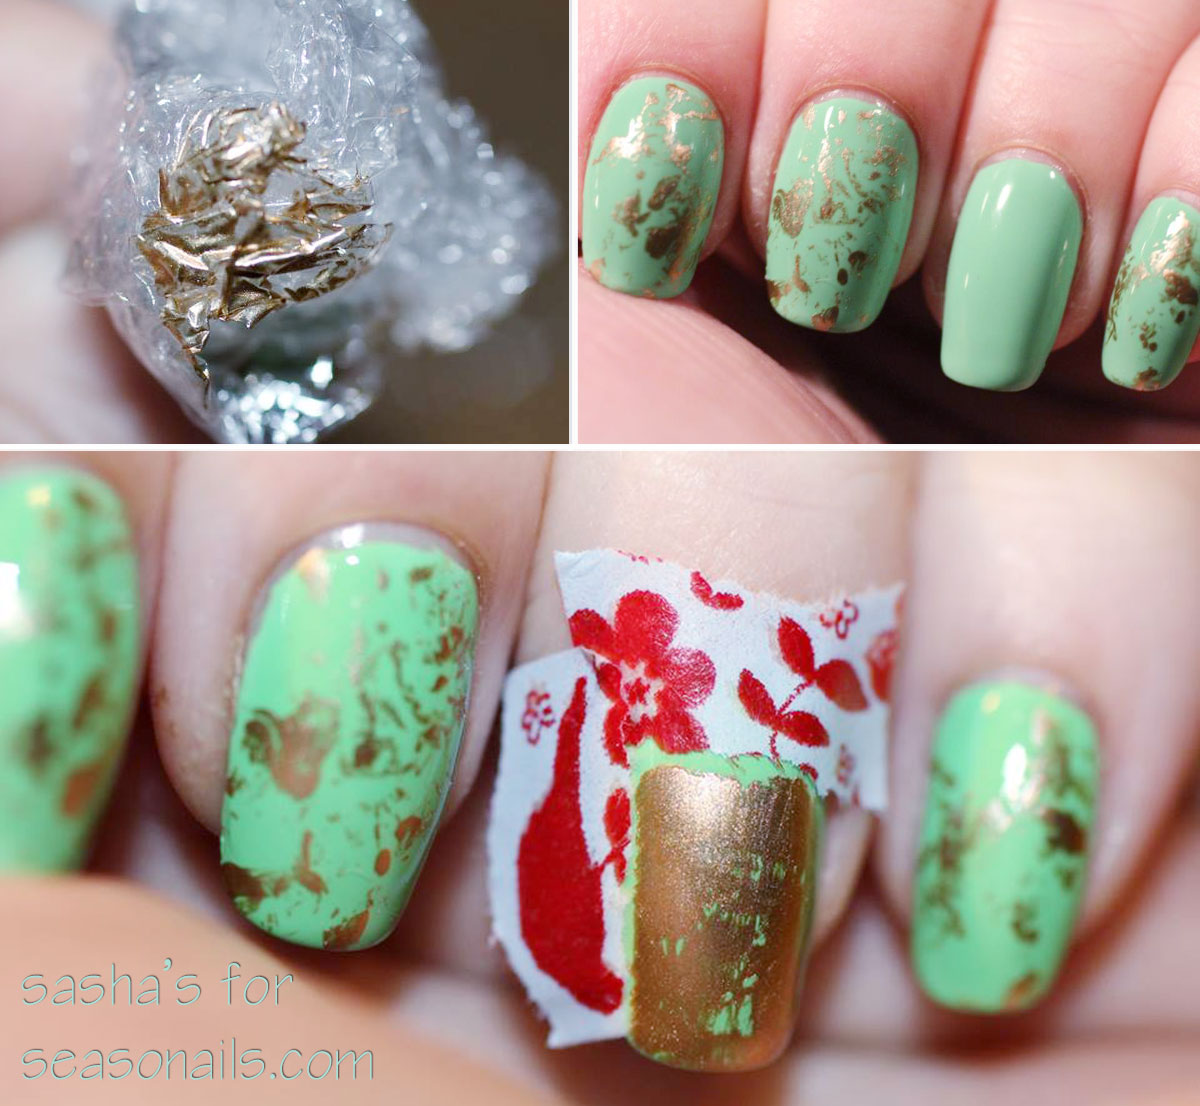 Stamped Japanese Green Tea Nails - Seasonails